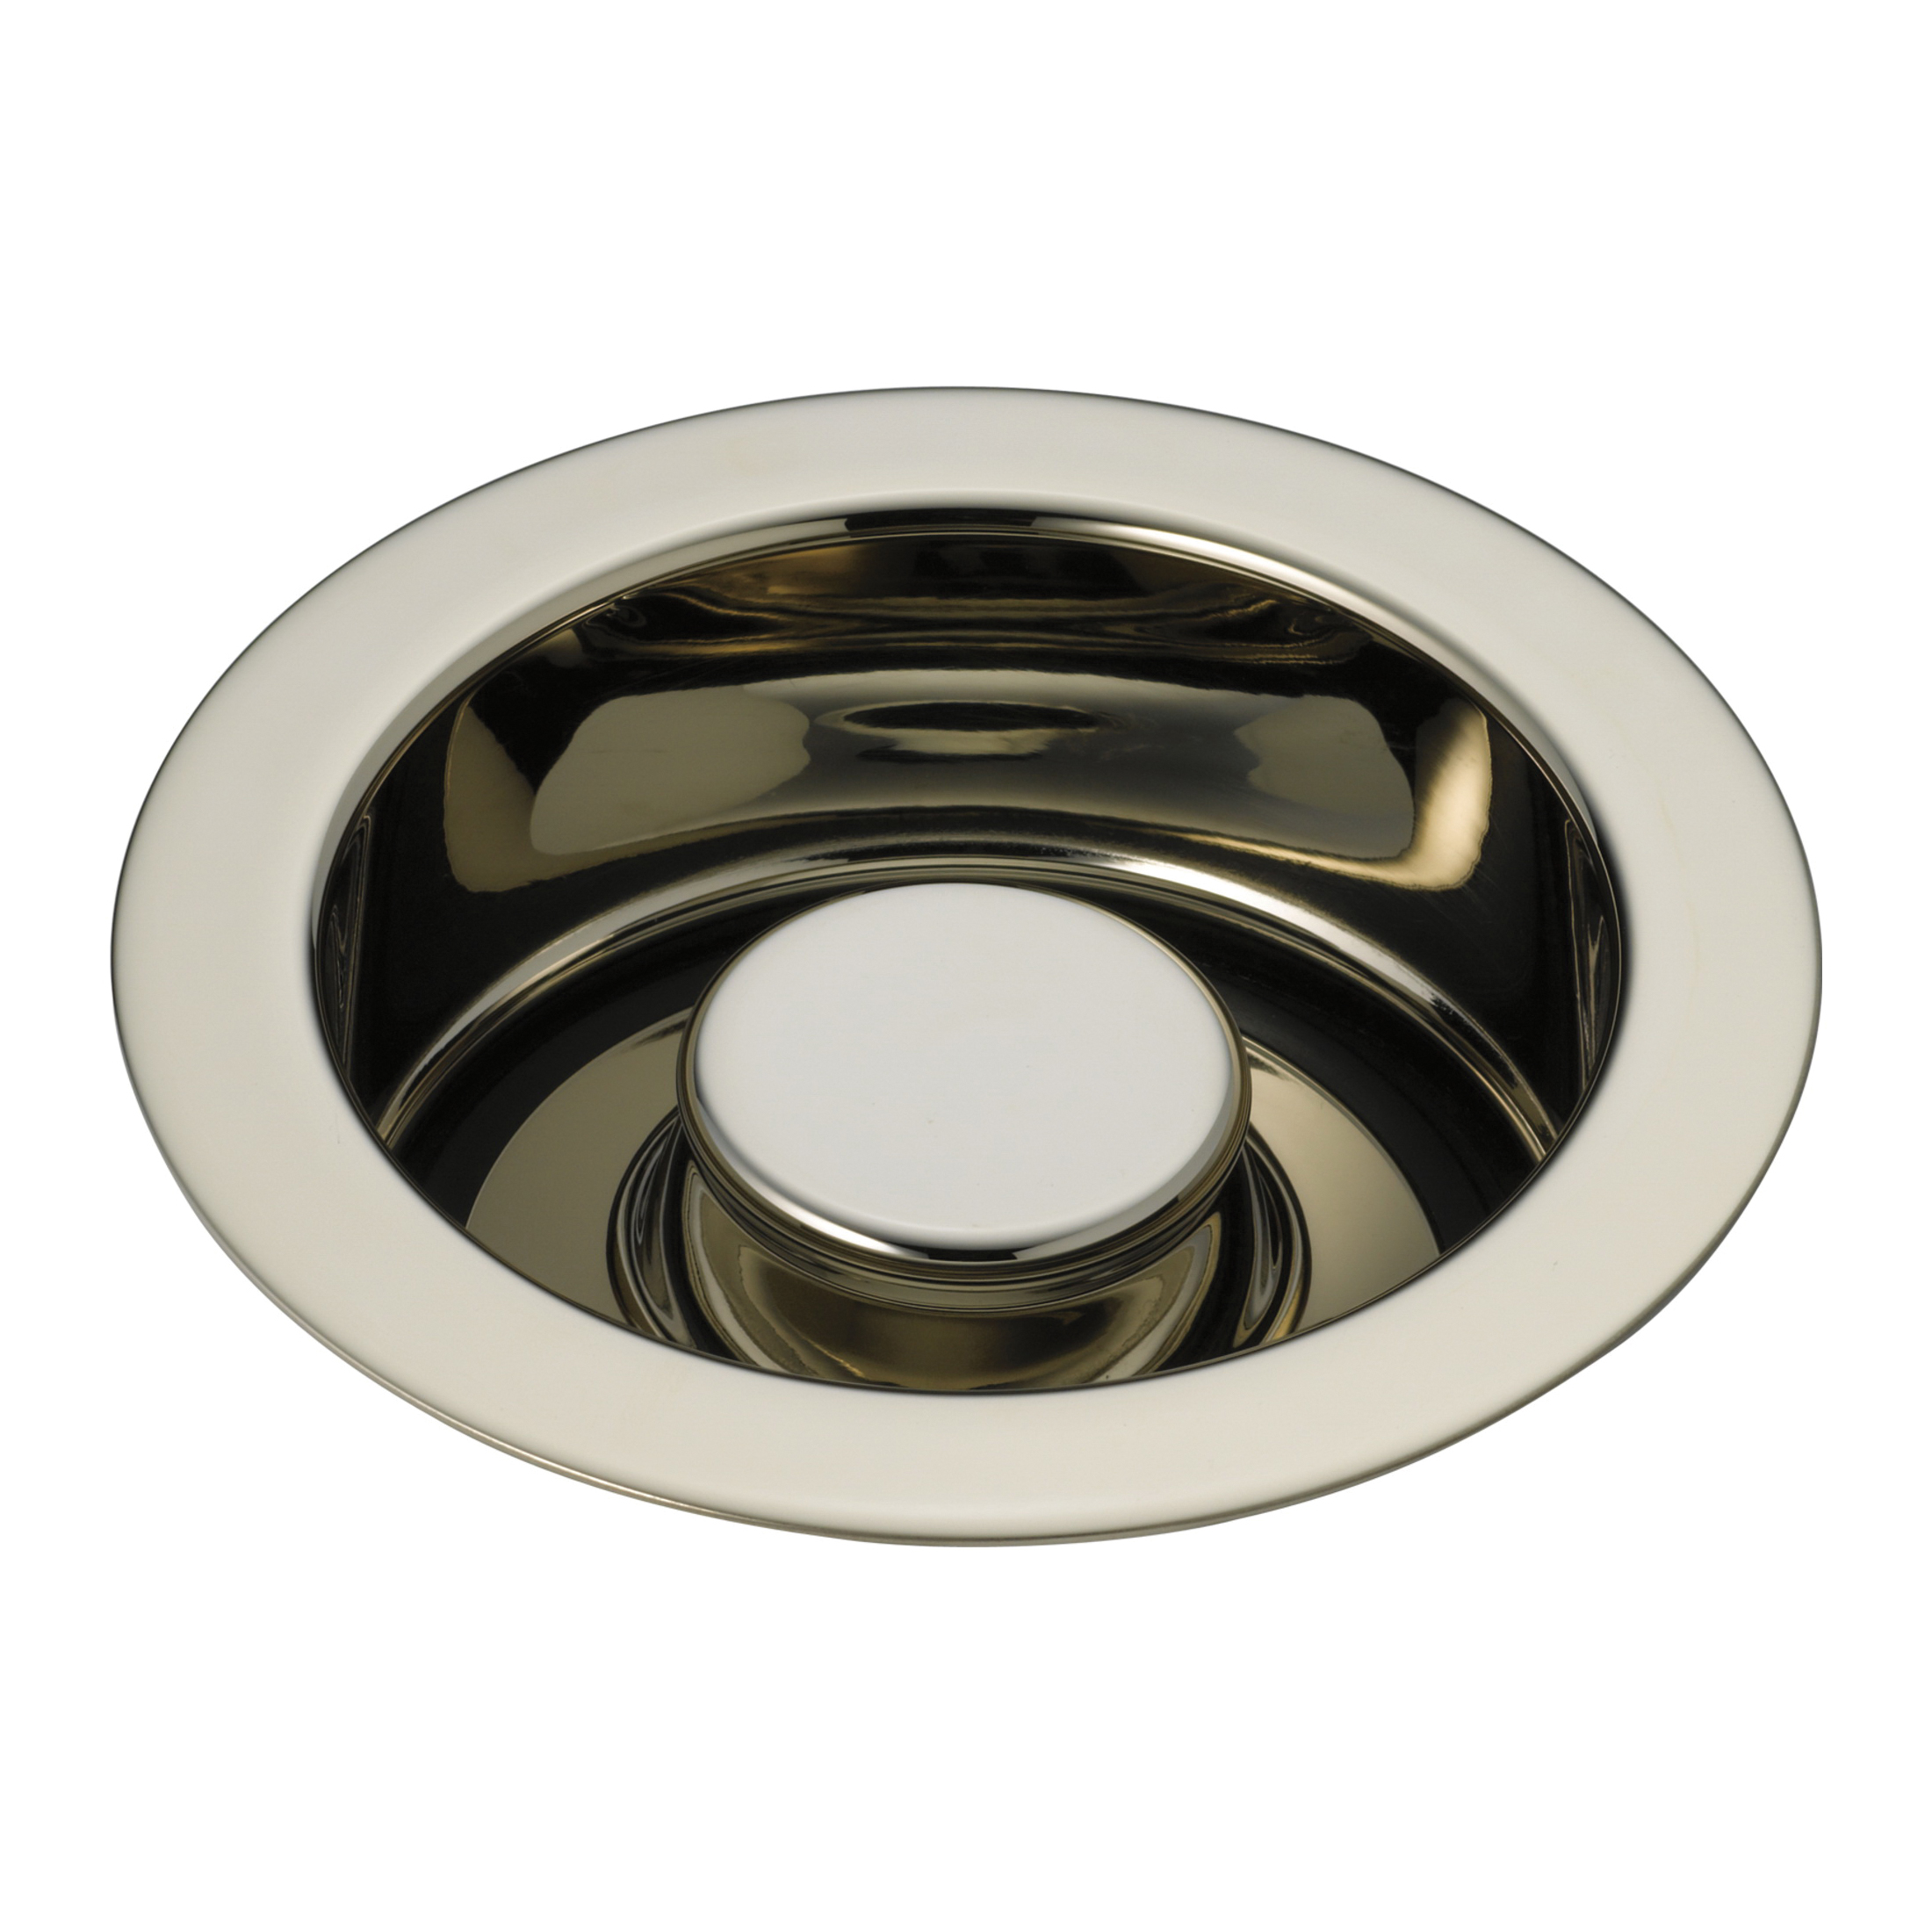 Brizo® 69070-PN Disposal and Flange Stopper, Brass, Polished Nickel, Import